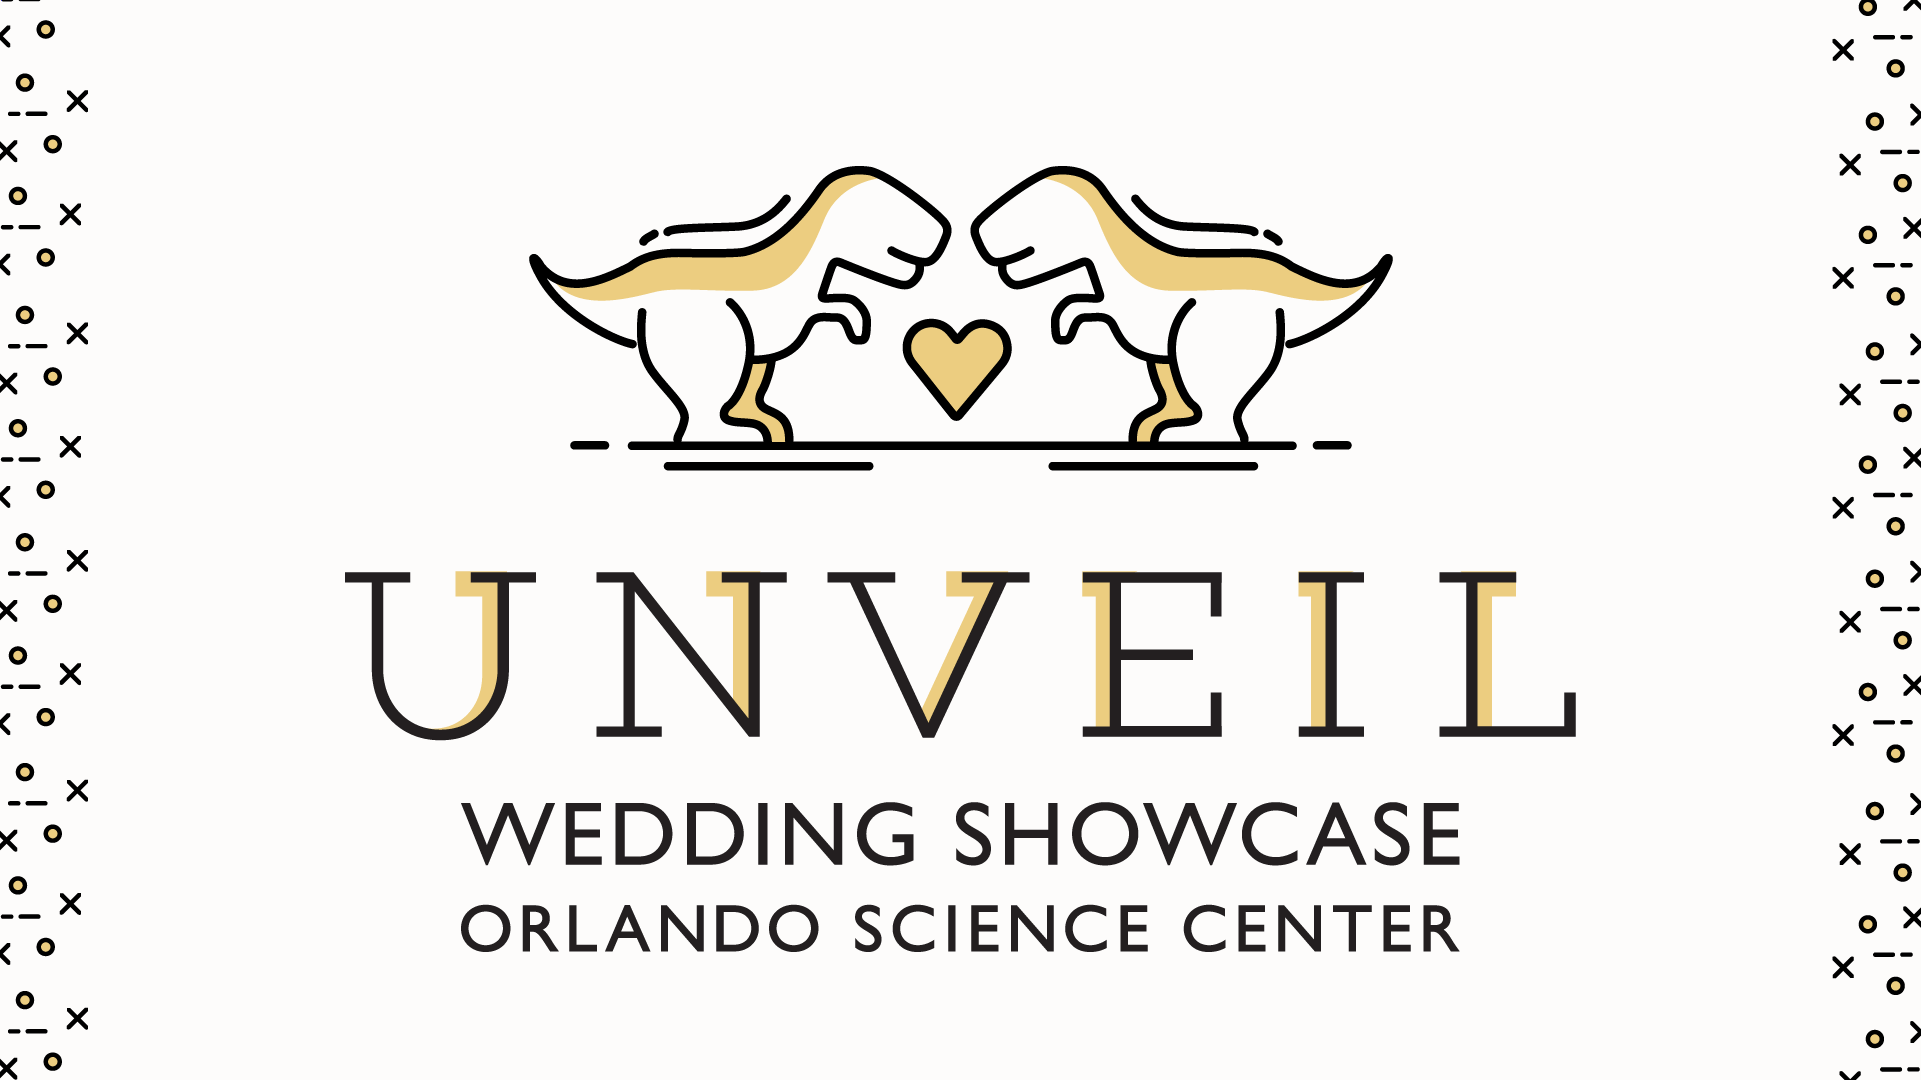 Unveil Central Florida Wedding Showcase